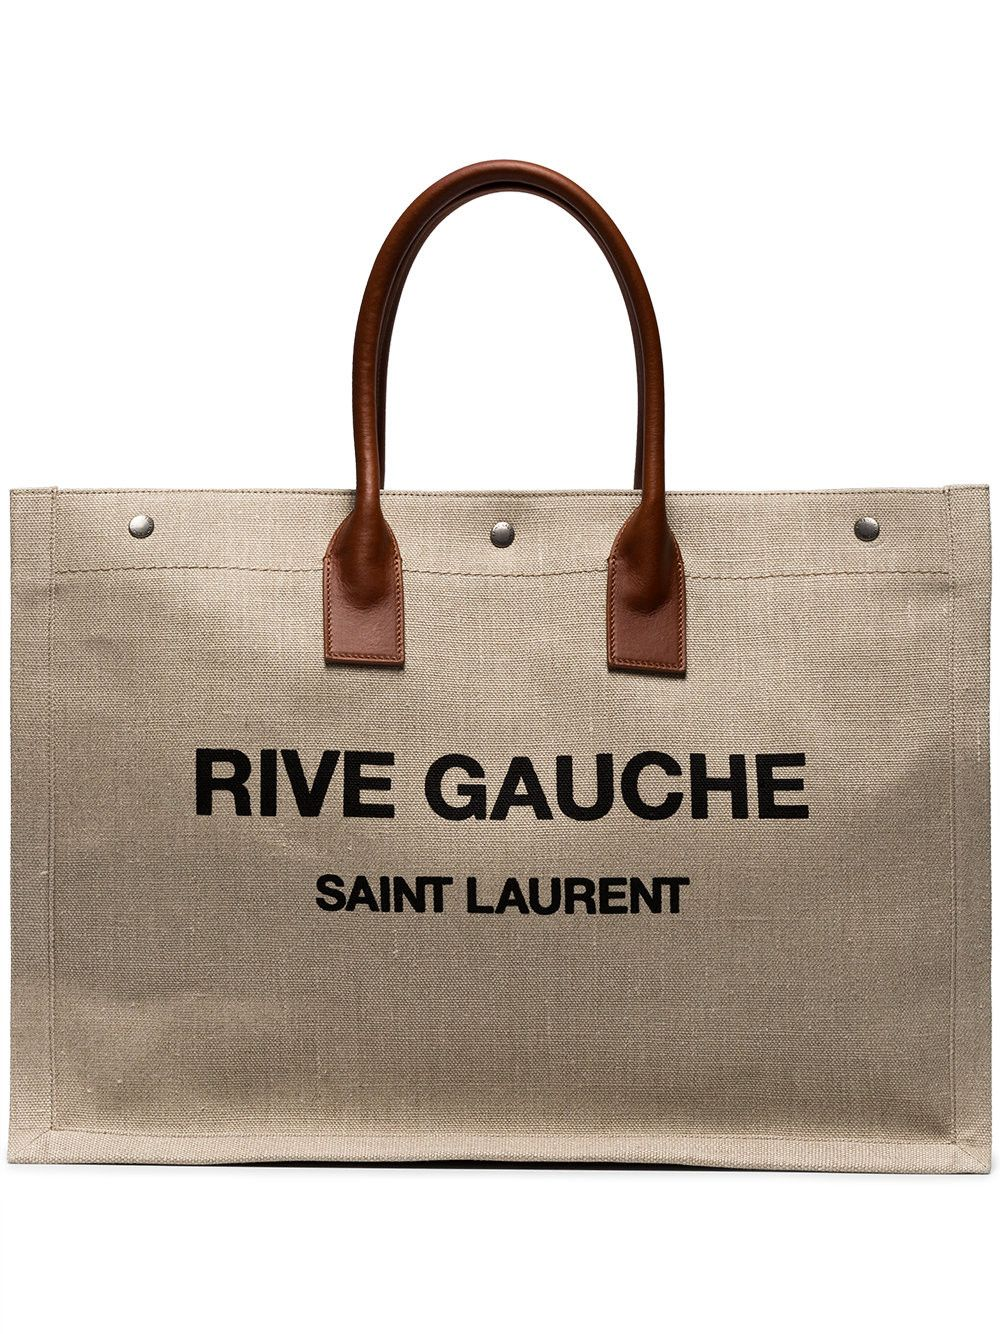 387b8db0f225 SAINT LAURENT Rive Gauche Large Noe Tote.  saintlaurent  bags  leather   hand bags  canvas  tote